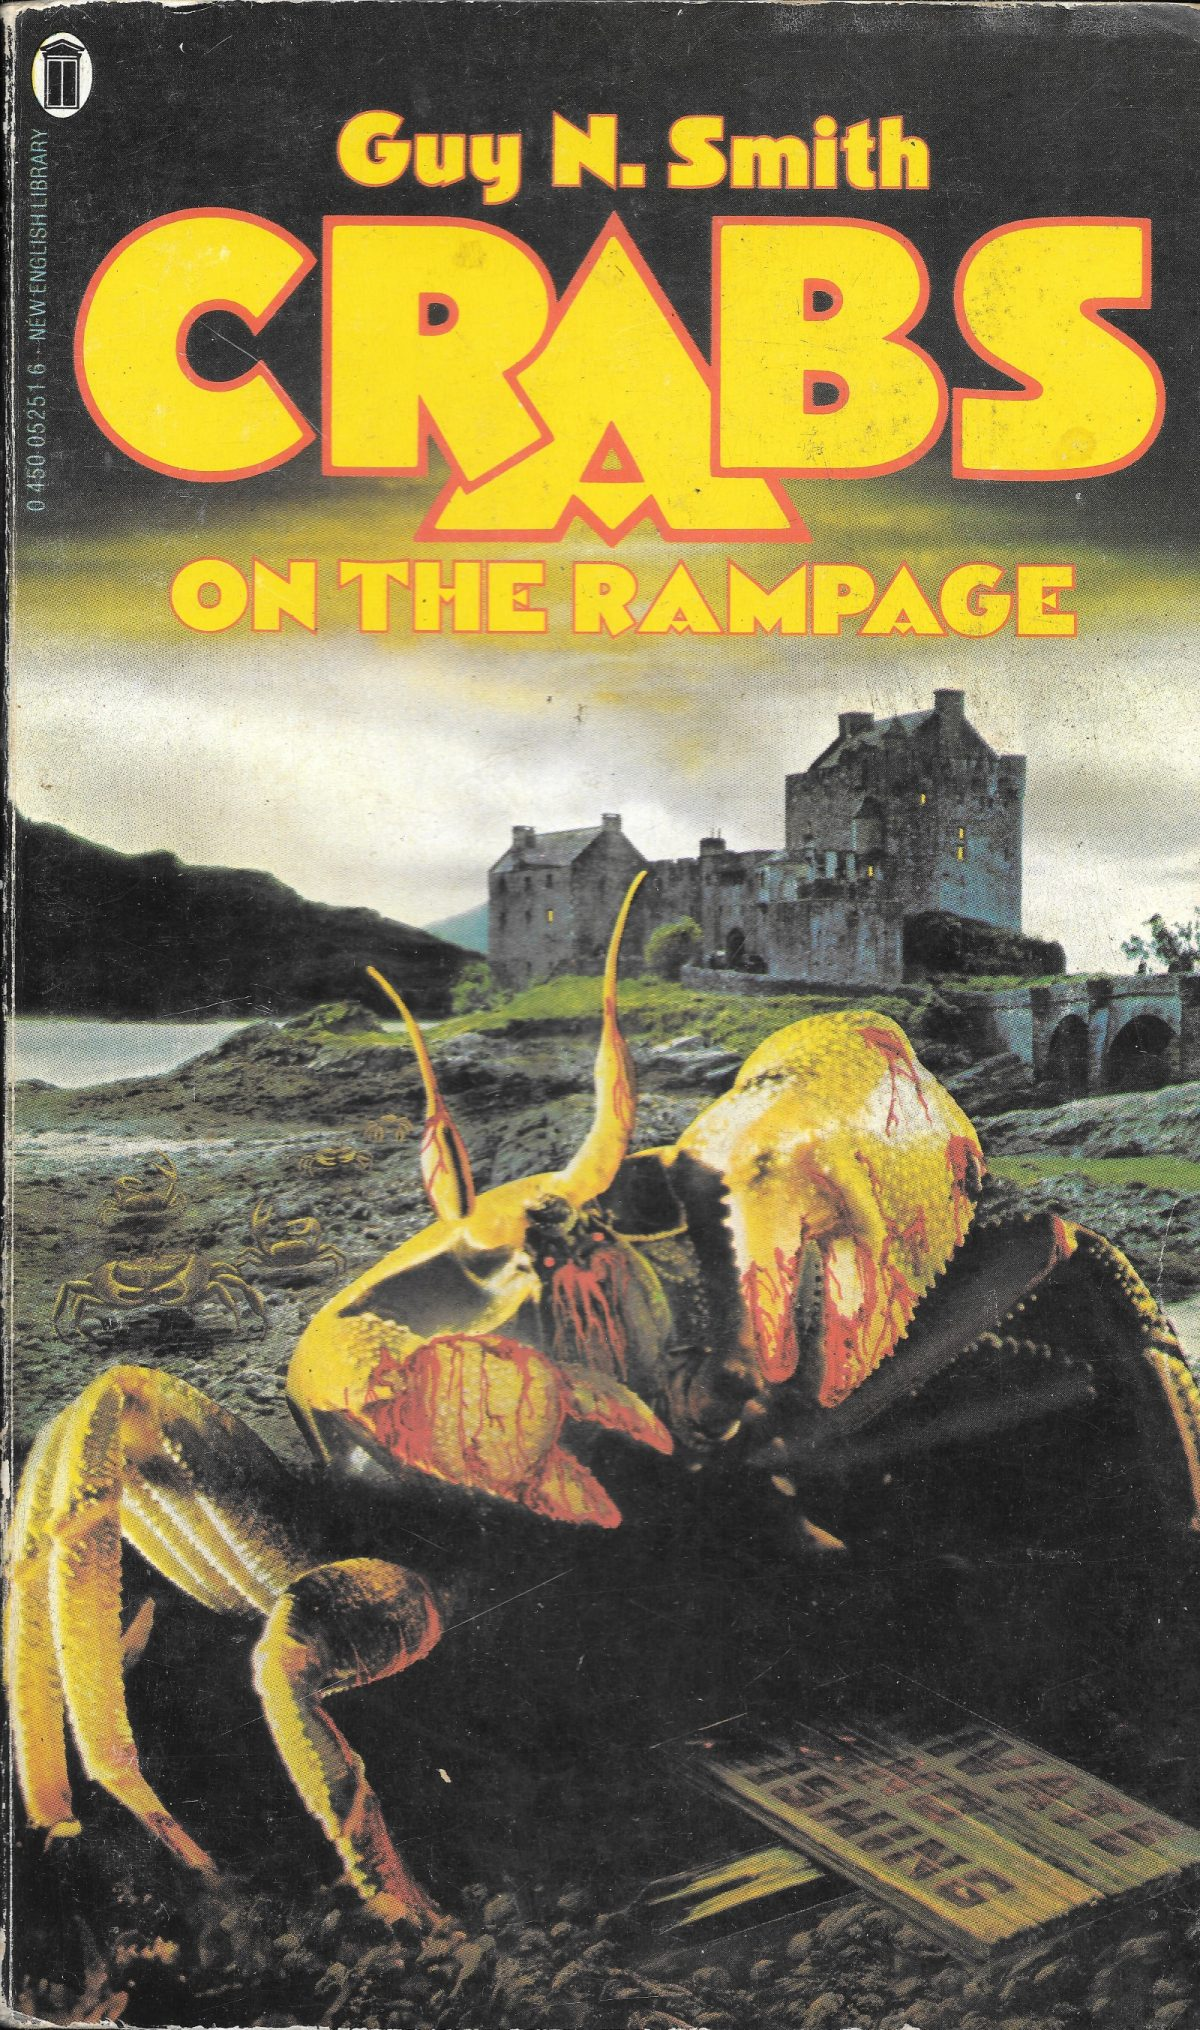 Guy N Smith, horror fictions, horror, books, Crabs on the Rampage